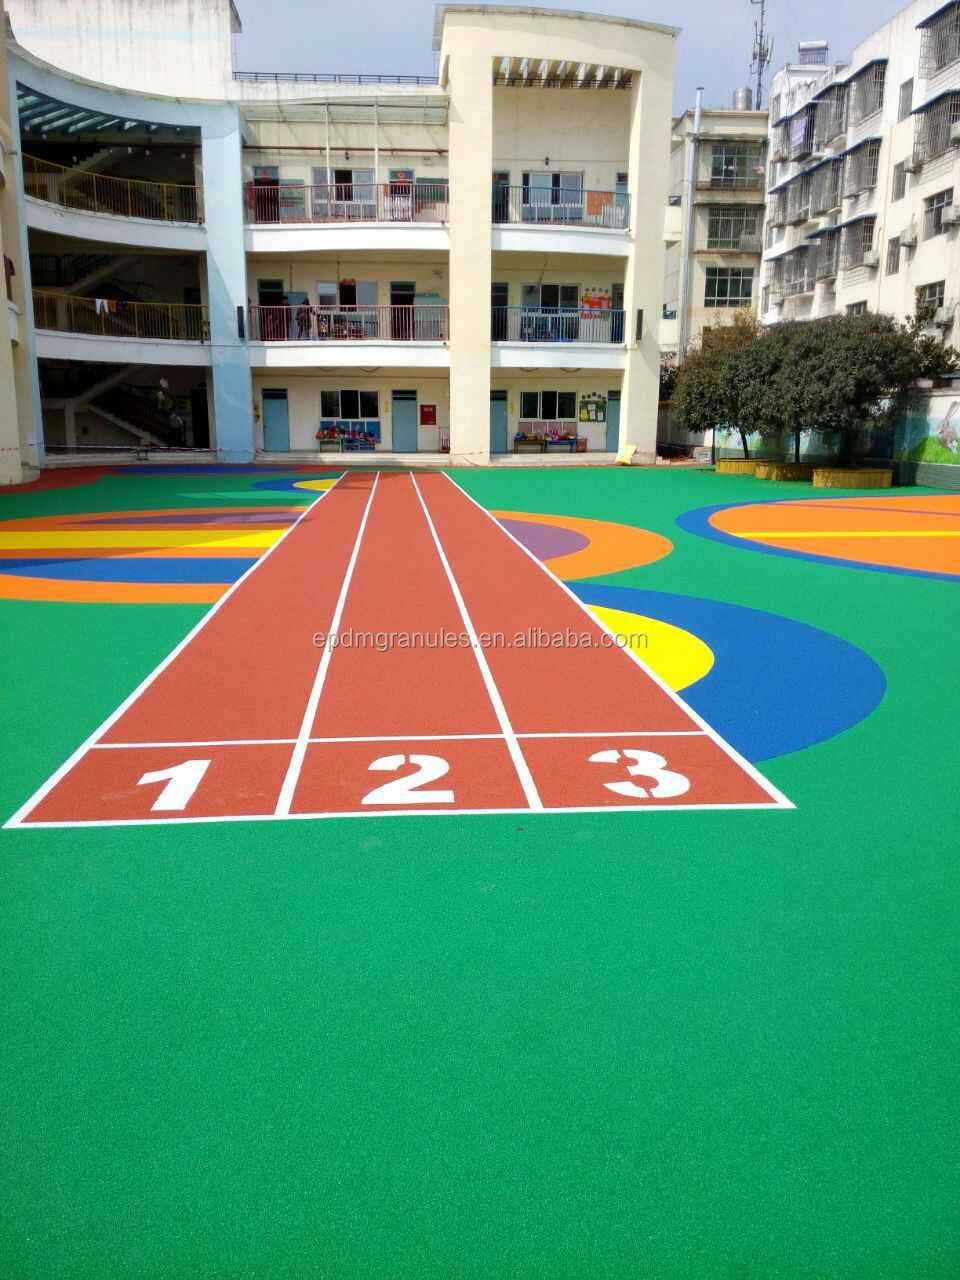 YINHE EPDM RUBBER PLAYGROUNDS